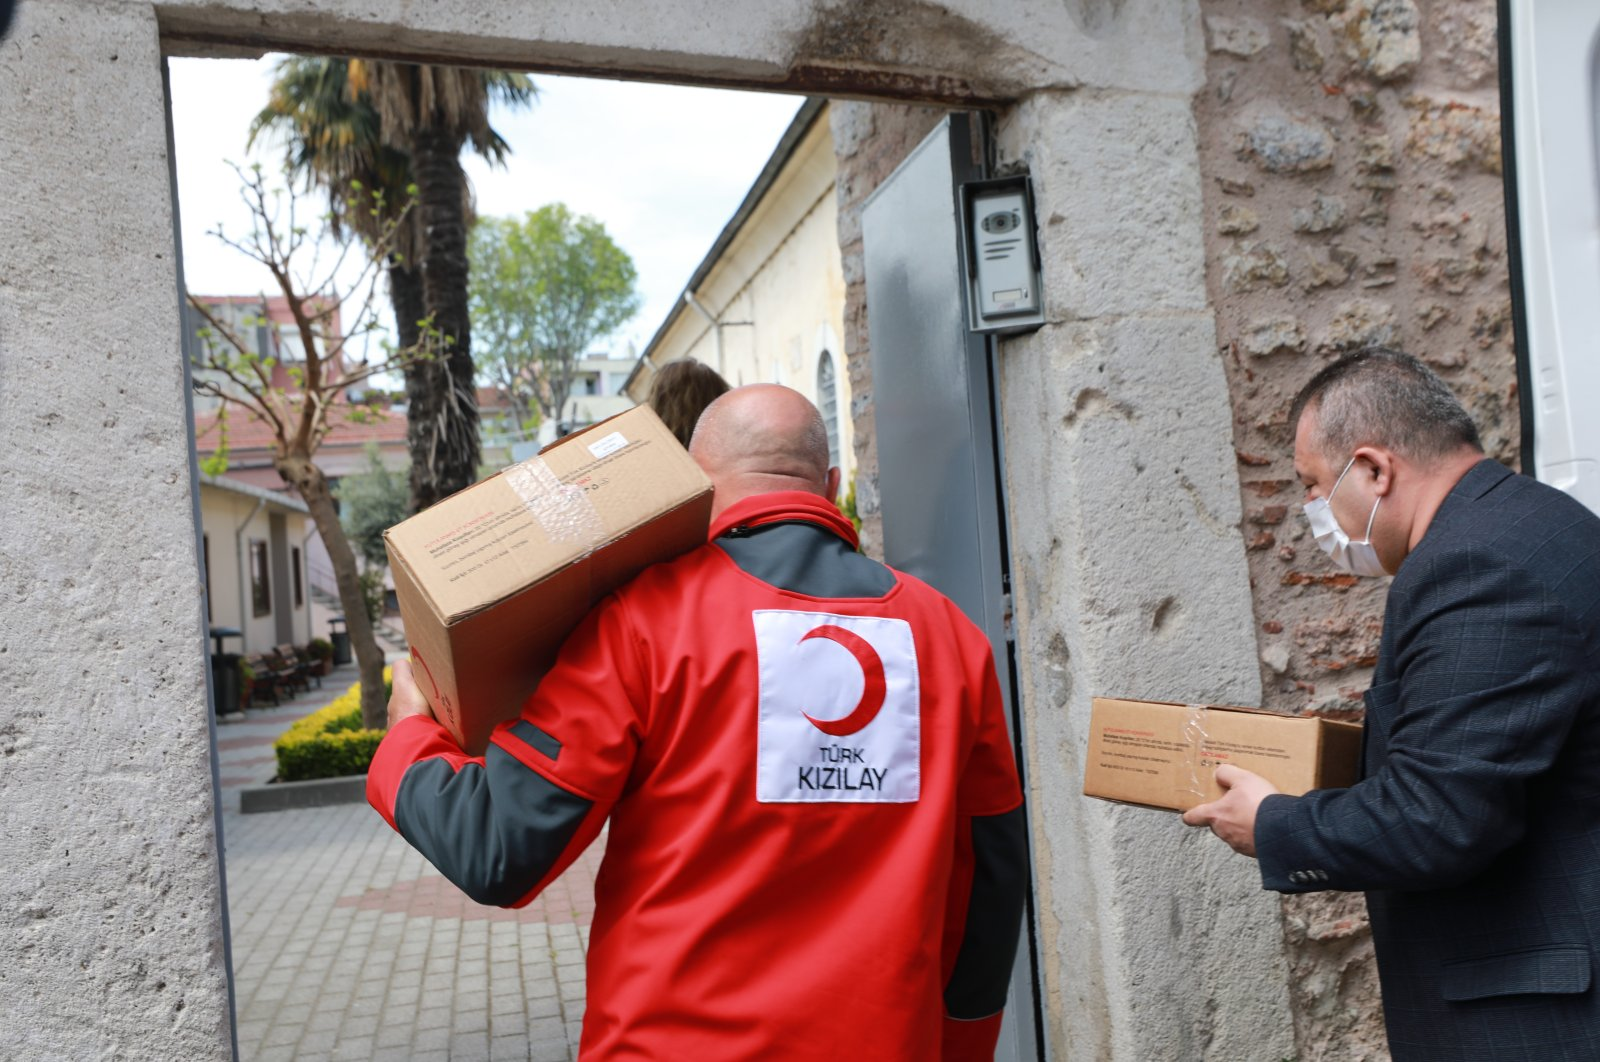 Turkish Red Crescent delivers food packages to those in need amid the coronavirus outbreak, Istanbul, Turkey, April 30, 2020. (IHA Photo)